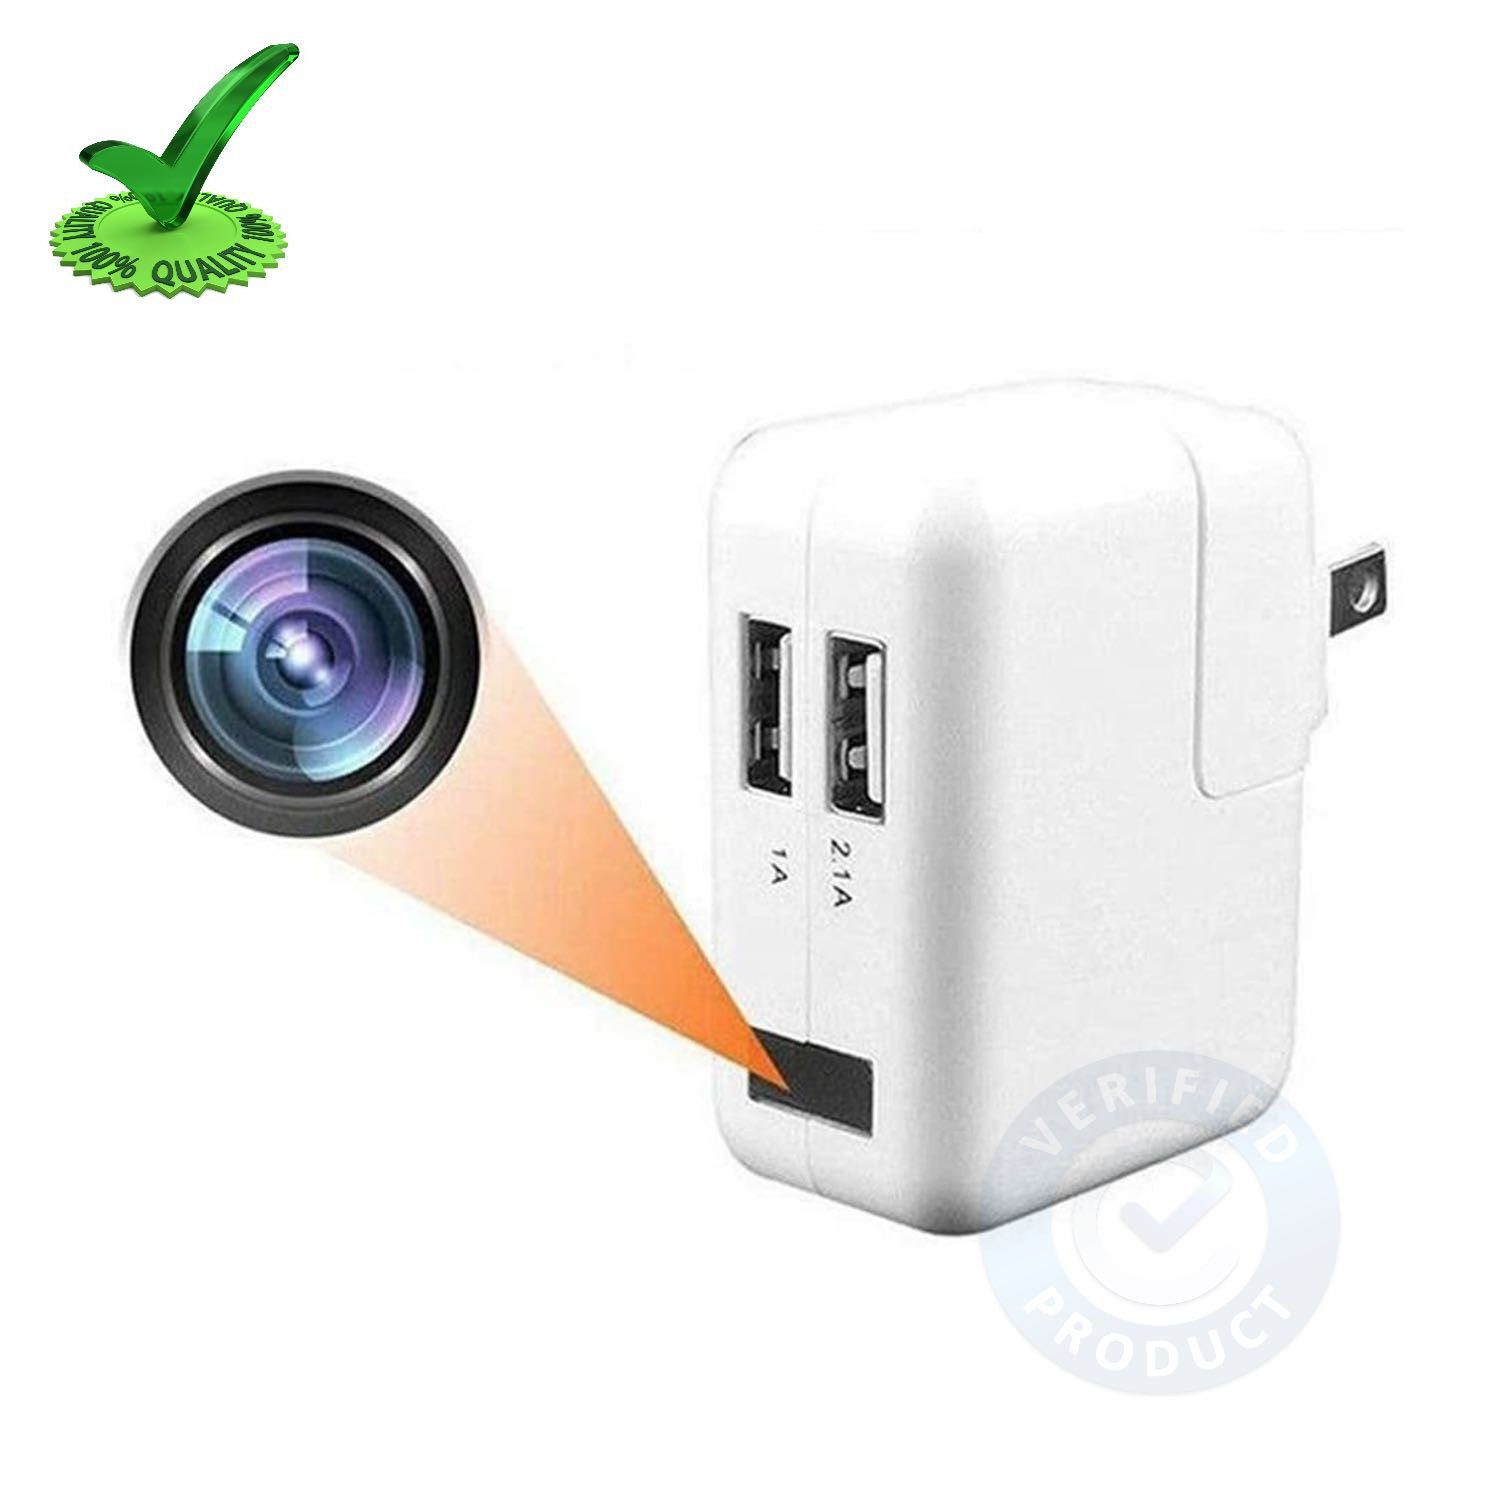 Digital 4k Wi-Fi Spy Hidden Camera with Recorder in Apple Usb Charger